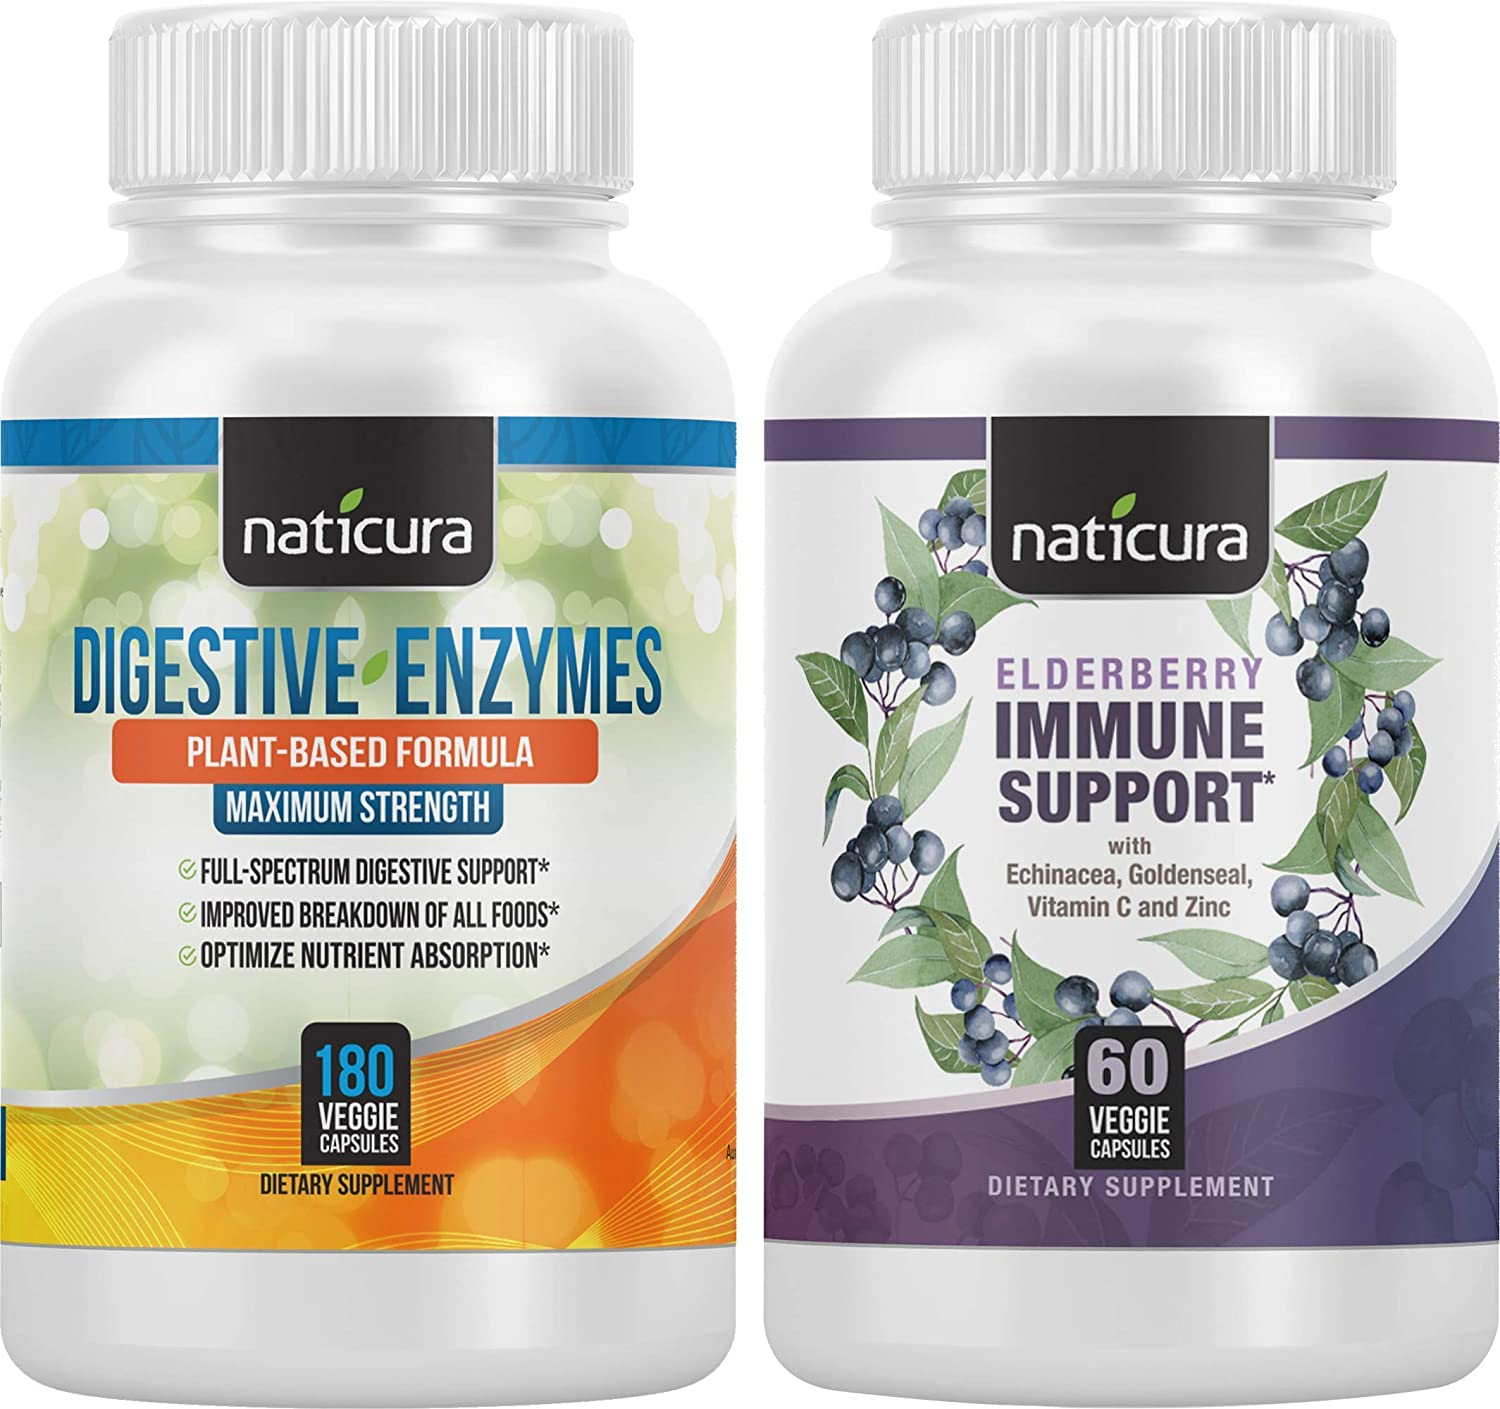 Naticura: Digestive Enzymes with Probiotics & Prebiotics (180 ct) and Elderberry Immune Support (60 ct) Bundle - Daily Supplements for Men and Women - Digestive and Immune Support - Made in The USA